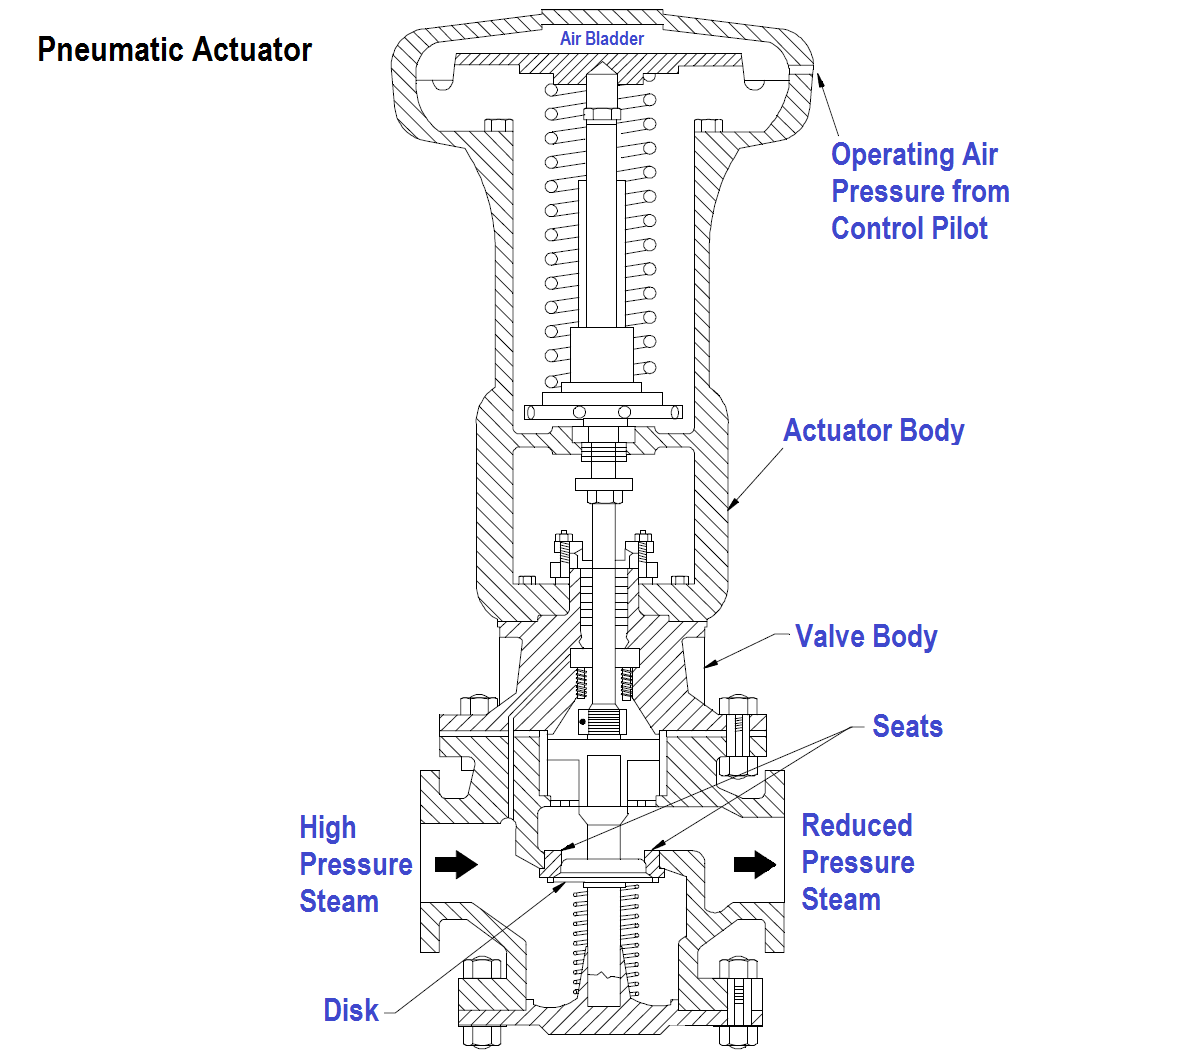 hight resolution of self actuated valves pneumatic hydraulic actuators